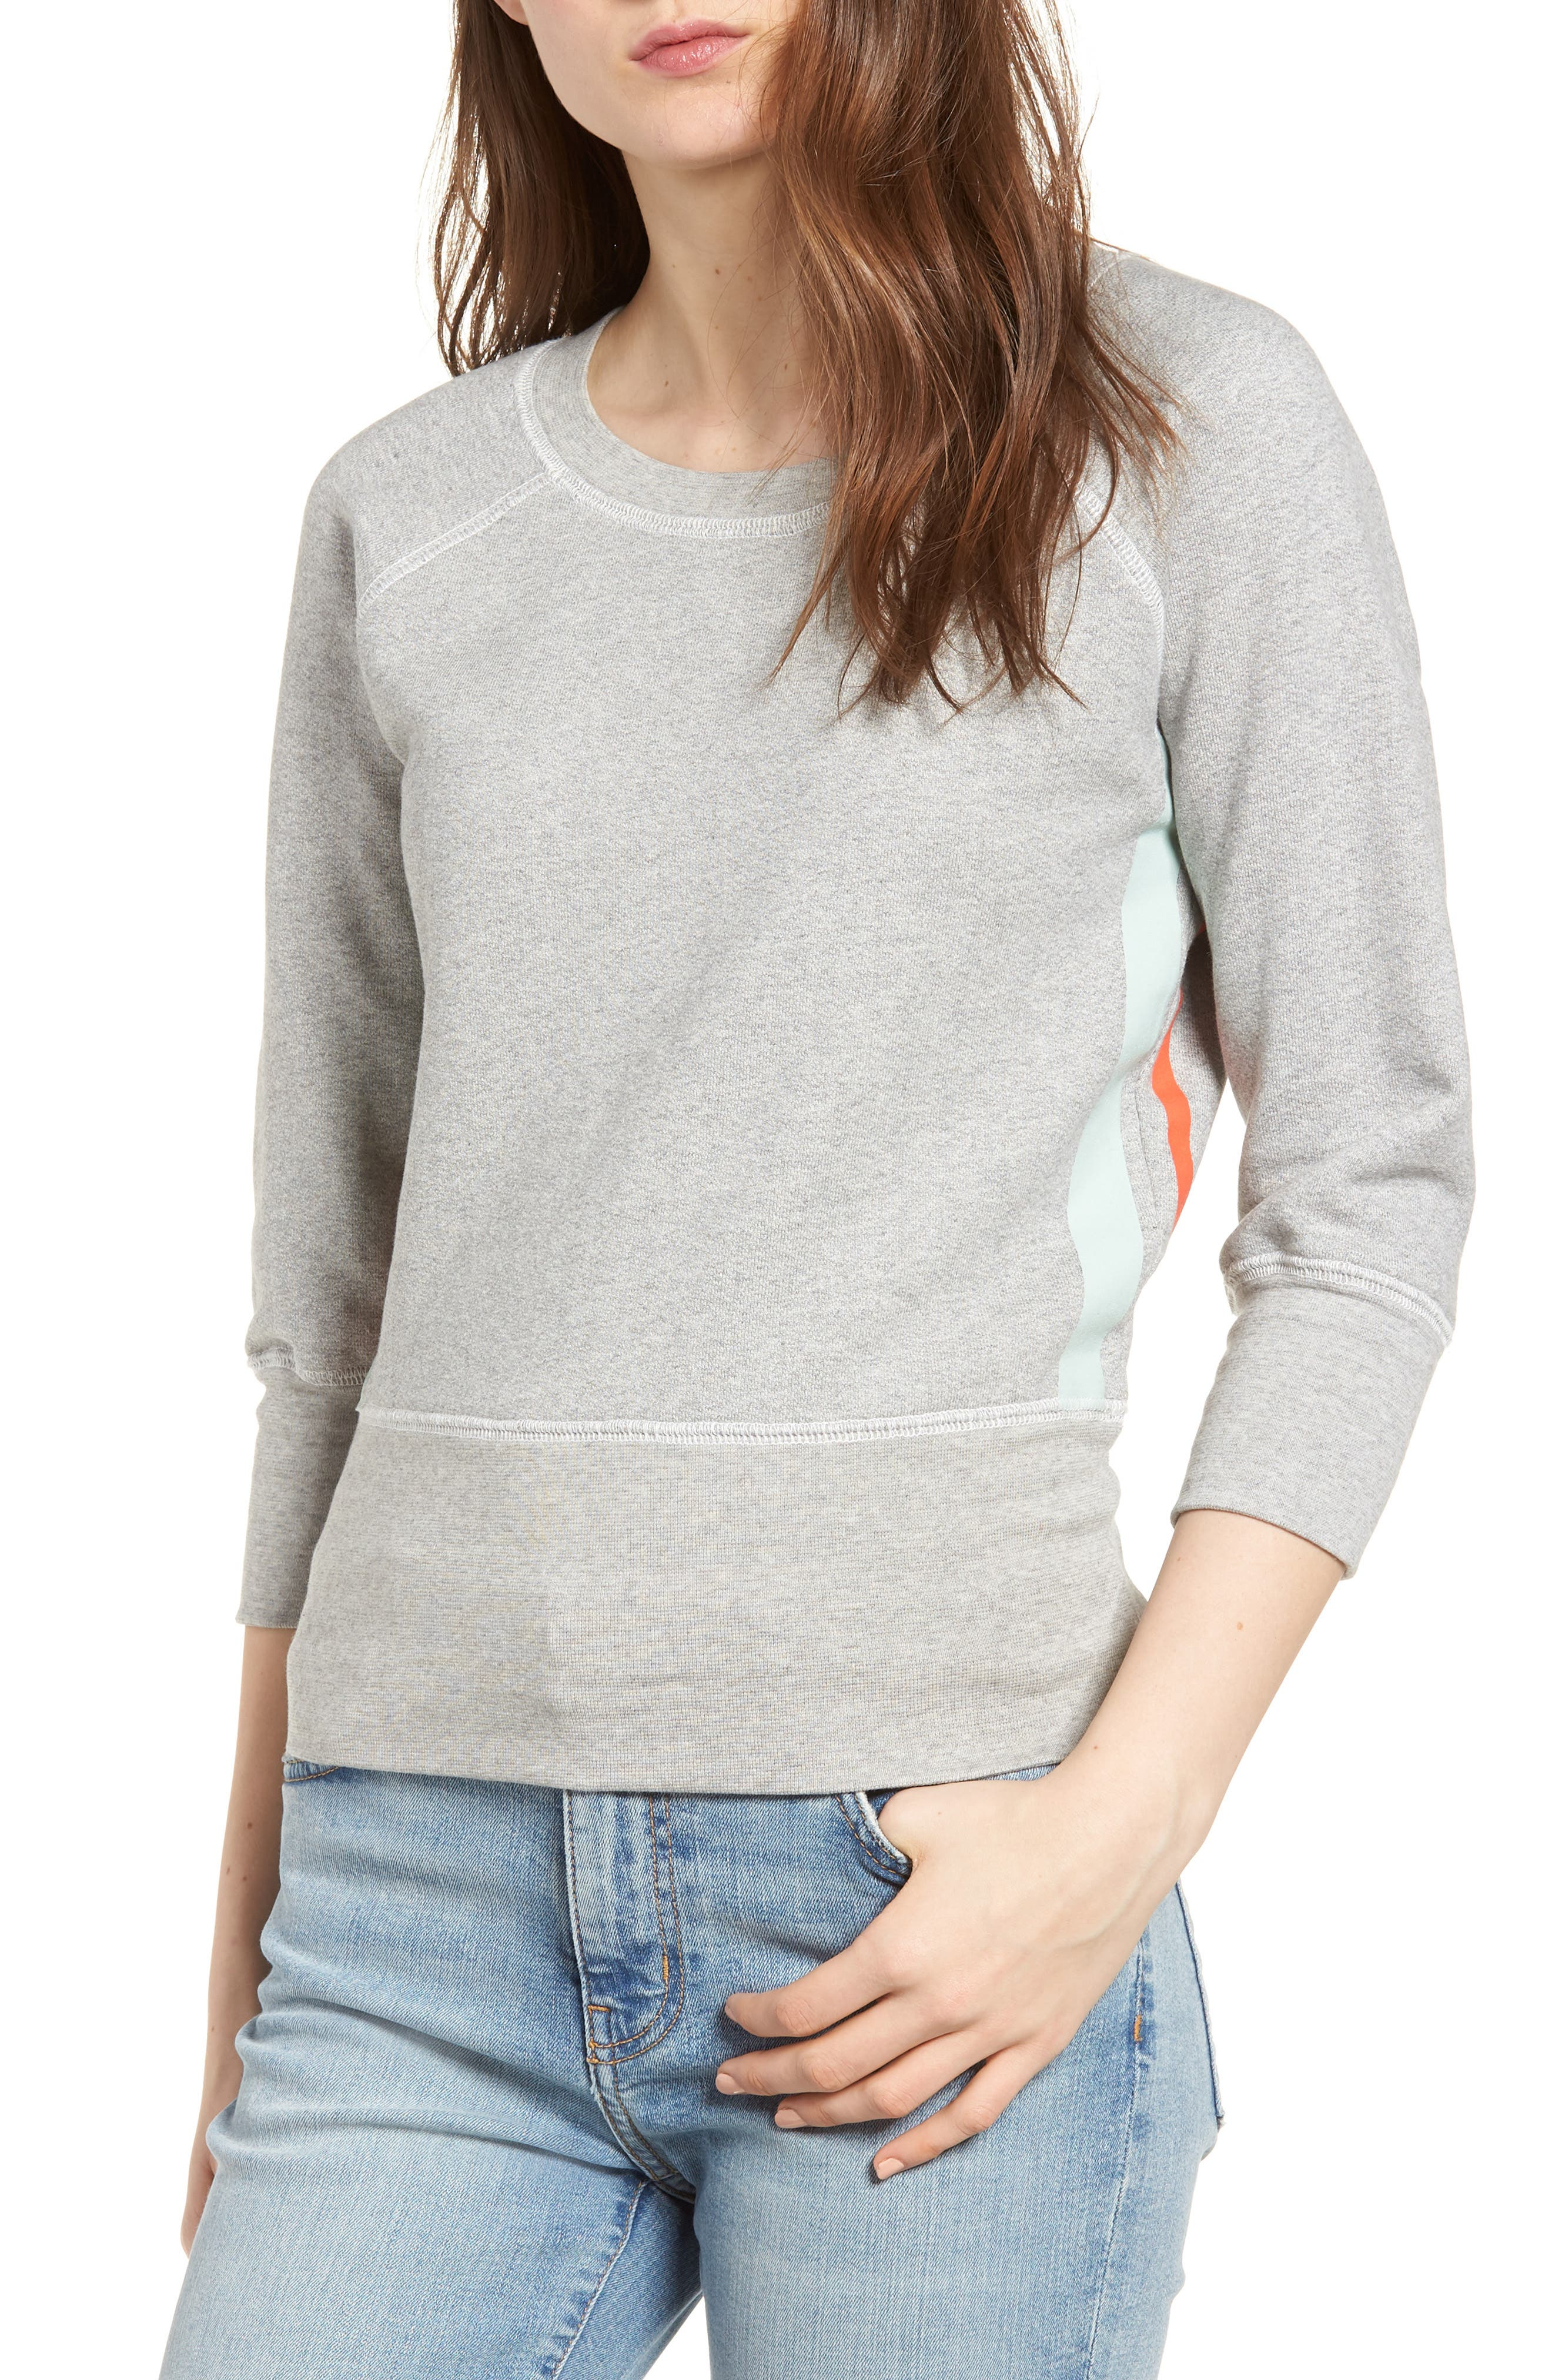 The Dallas Sweatshirt,                             Main thumbnail 1, color,                             Heather Grey Fleece